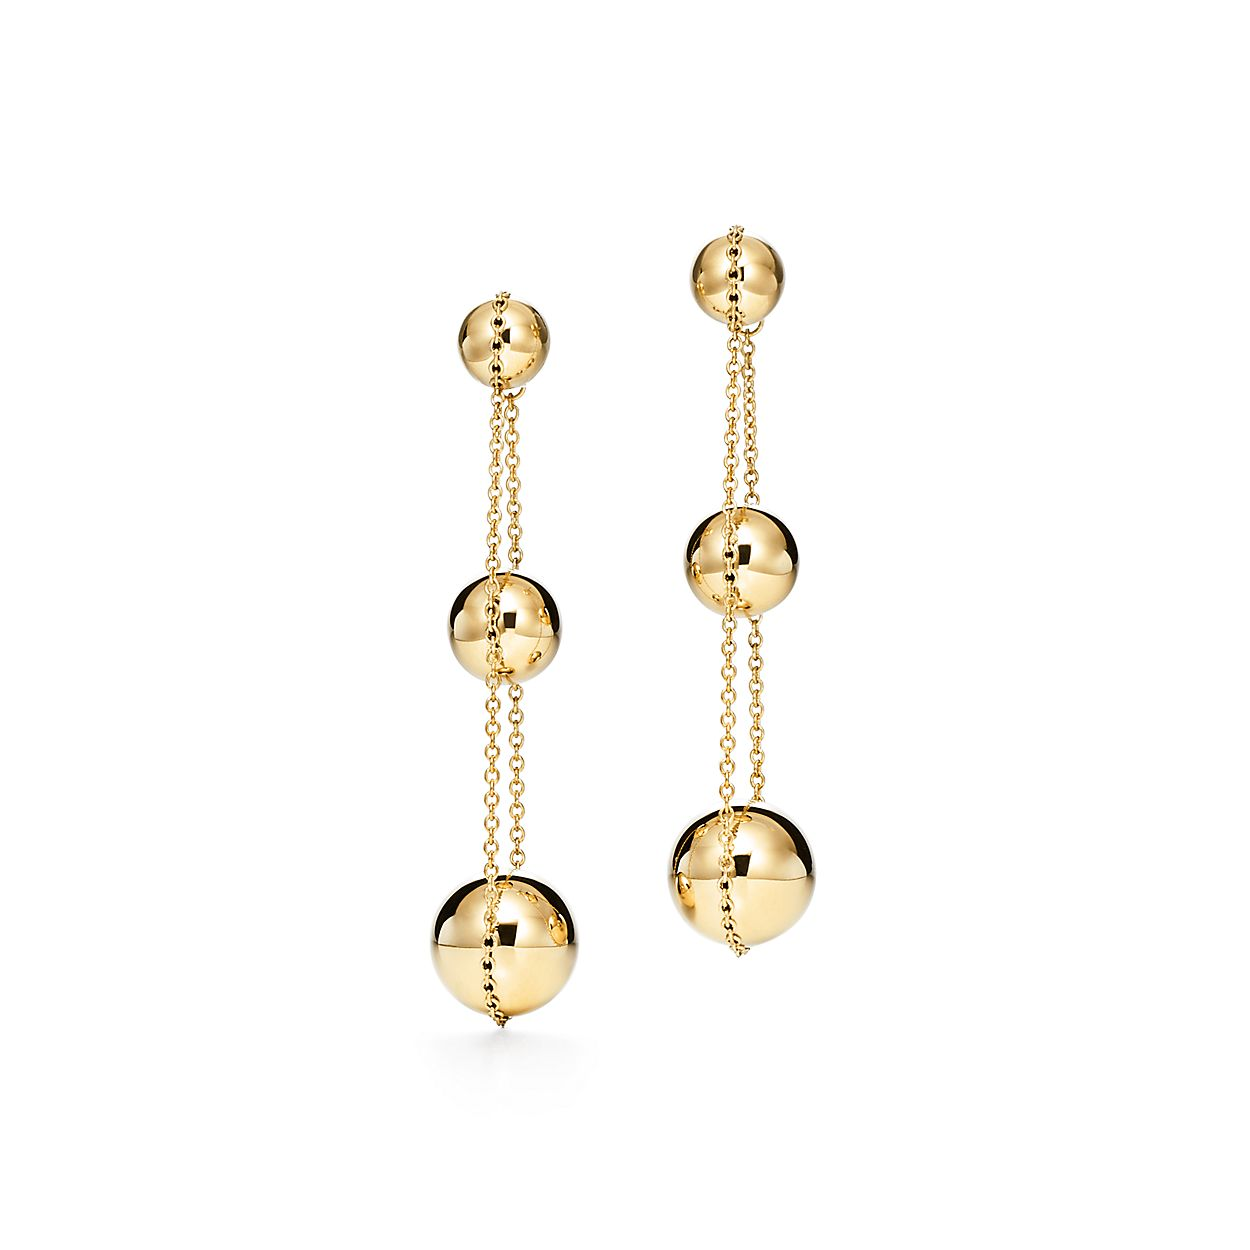 Tiffany Hardwear Triple Drop Earrings